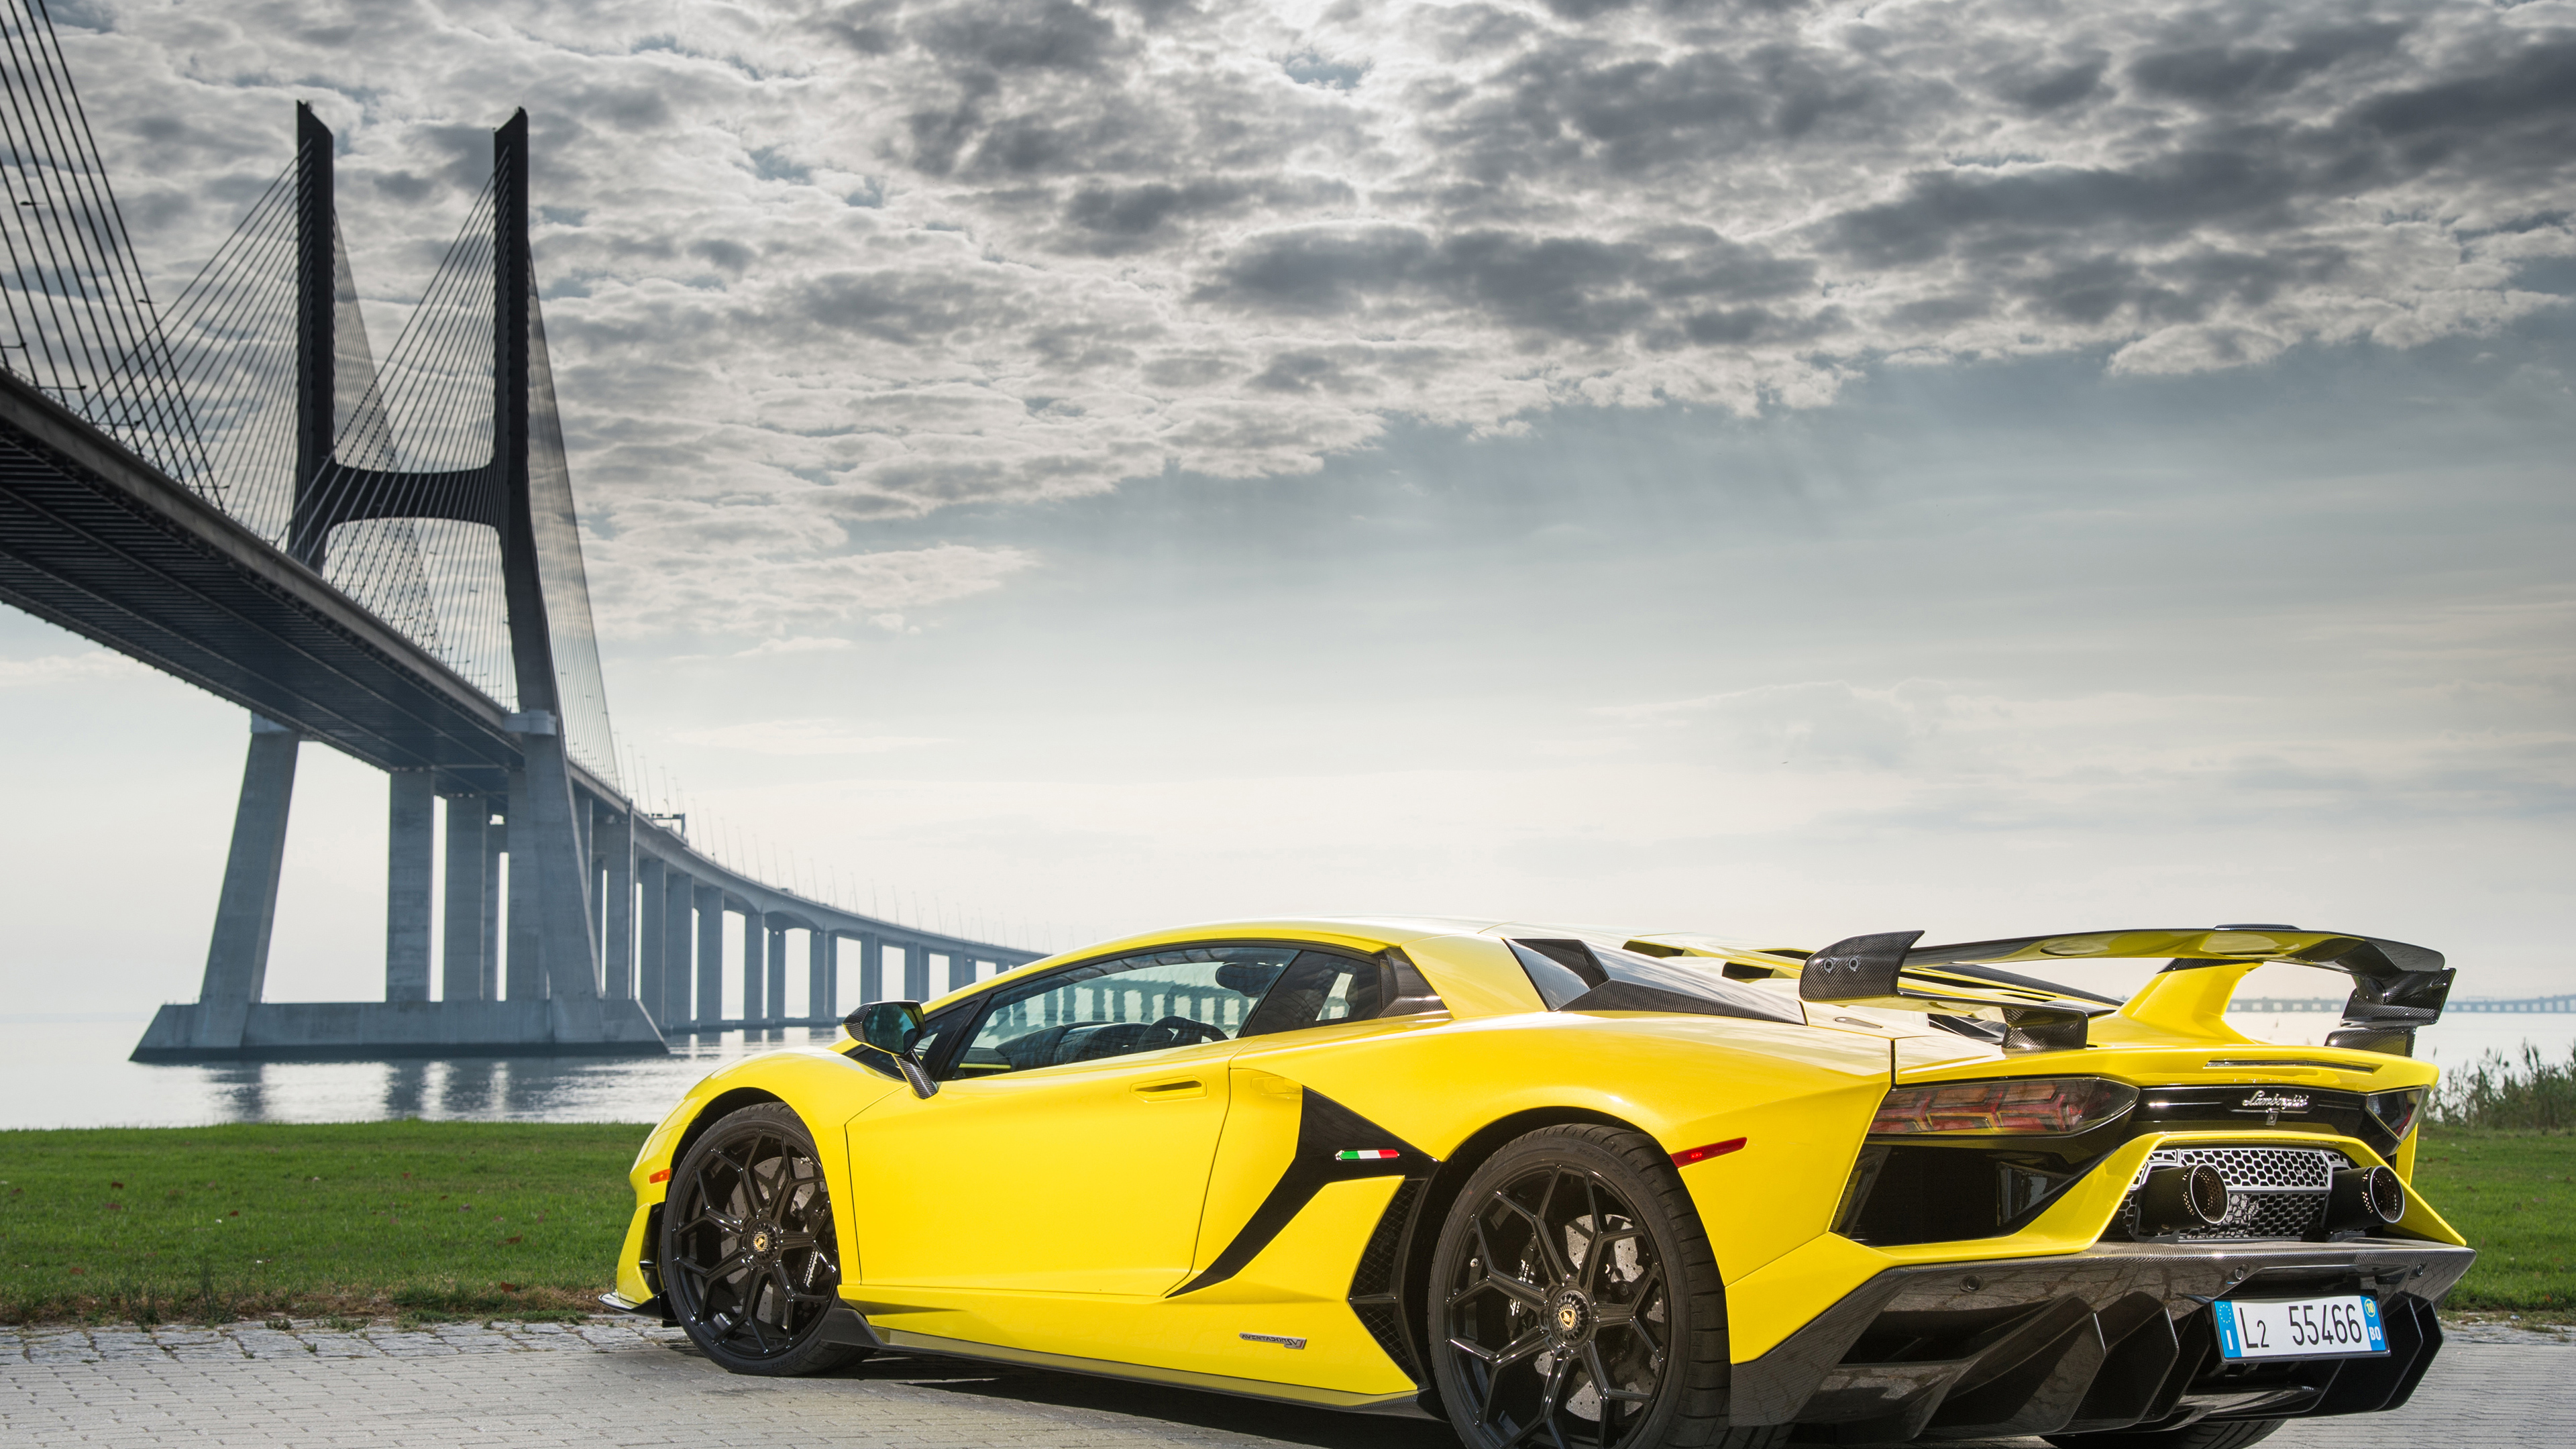 Wallpaper 4k 2019 Lamborghini Aventador SVJ Rear 2018 cars